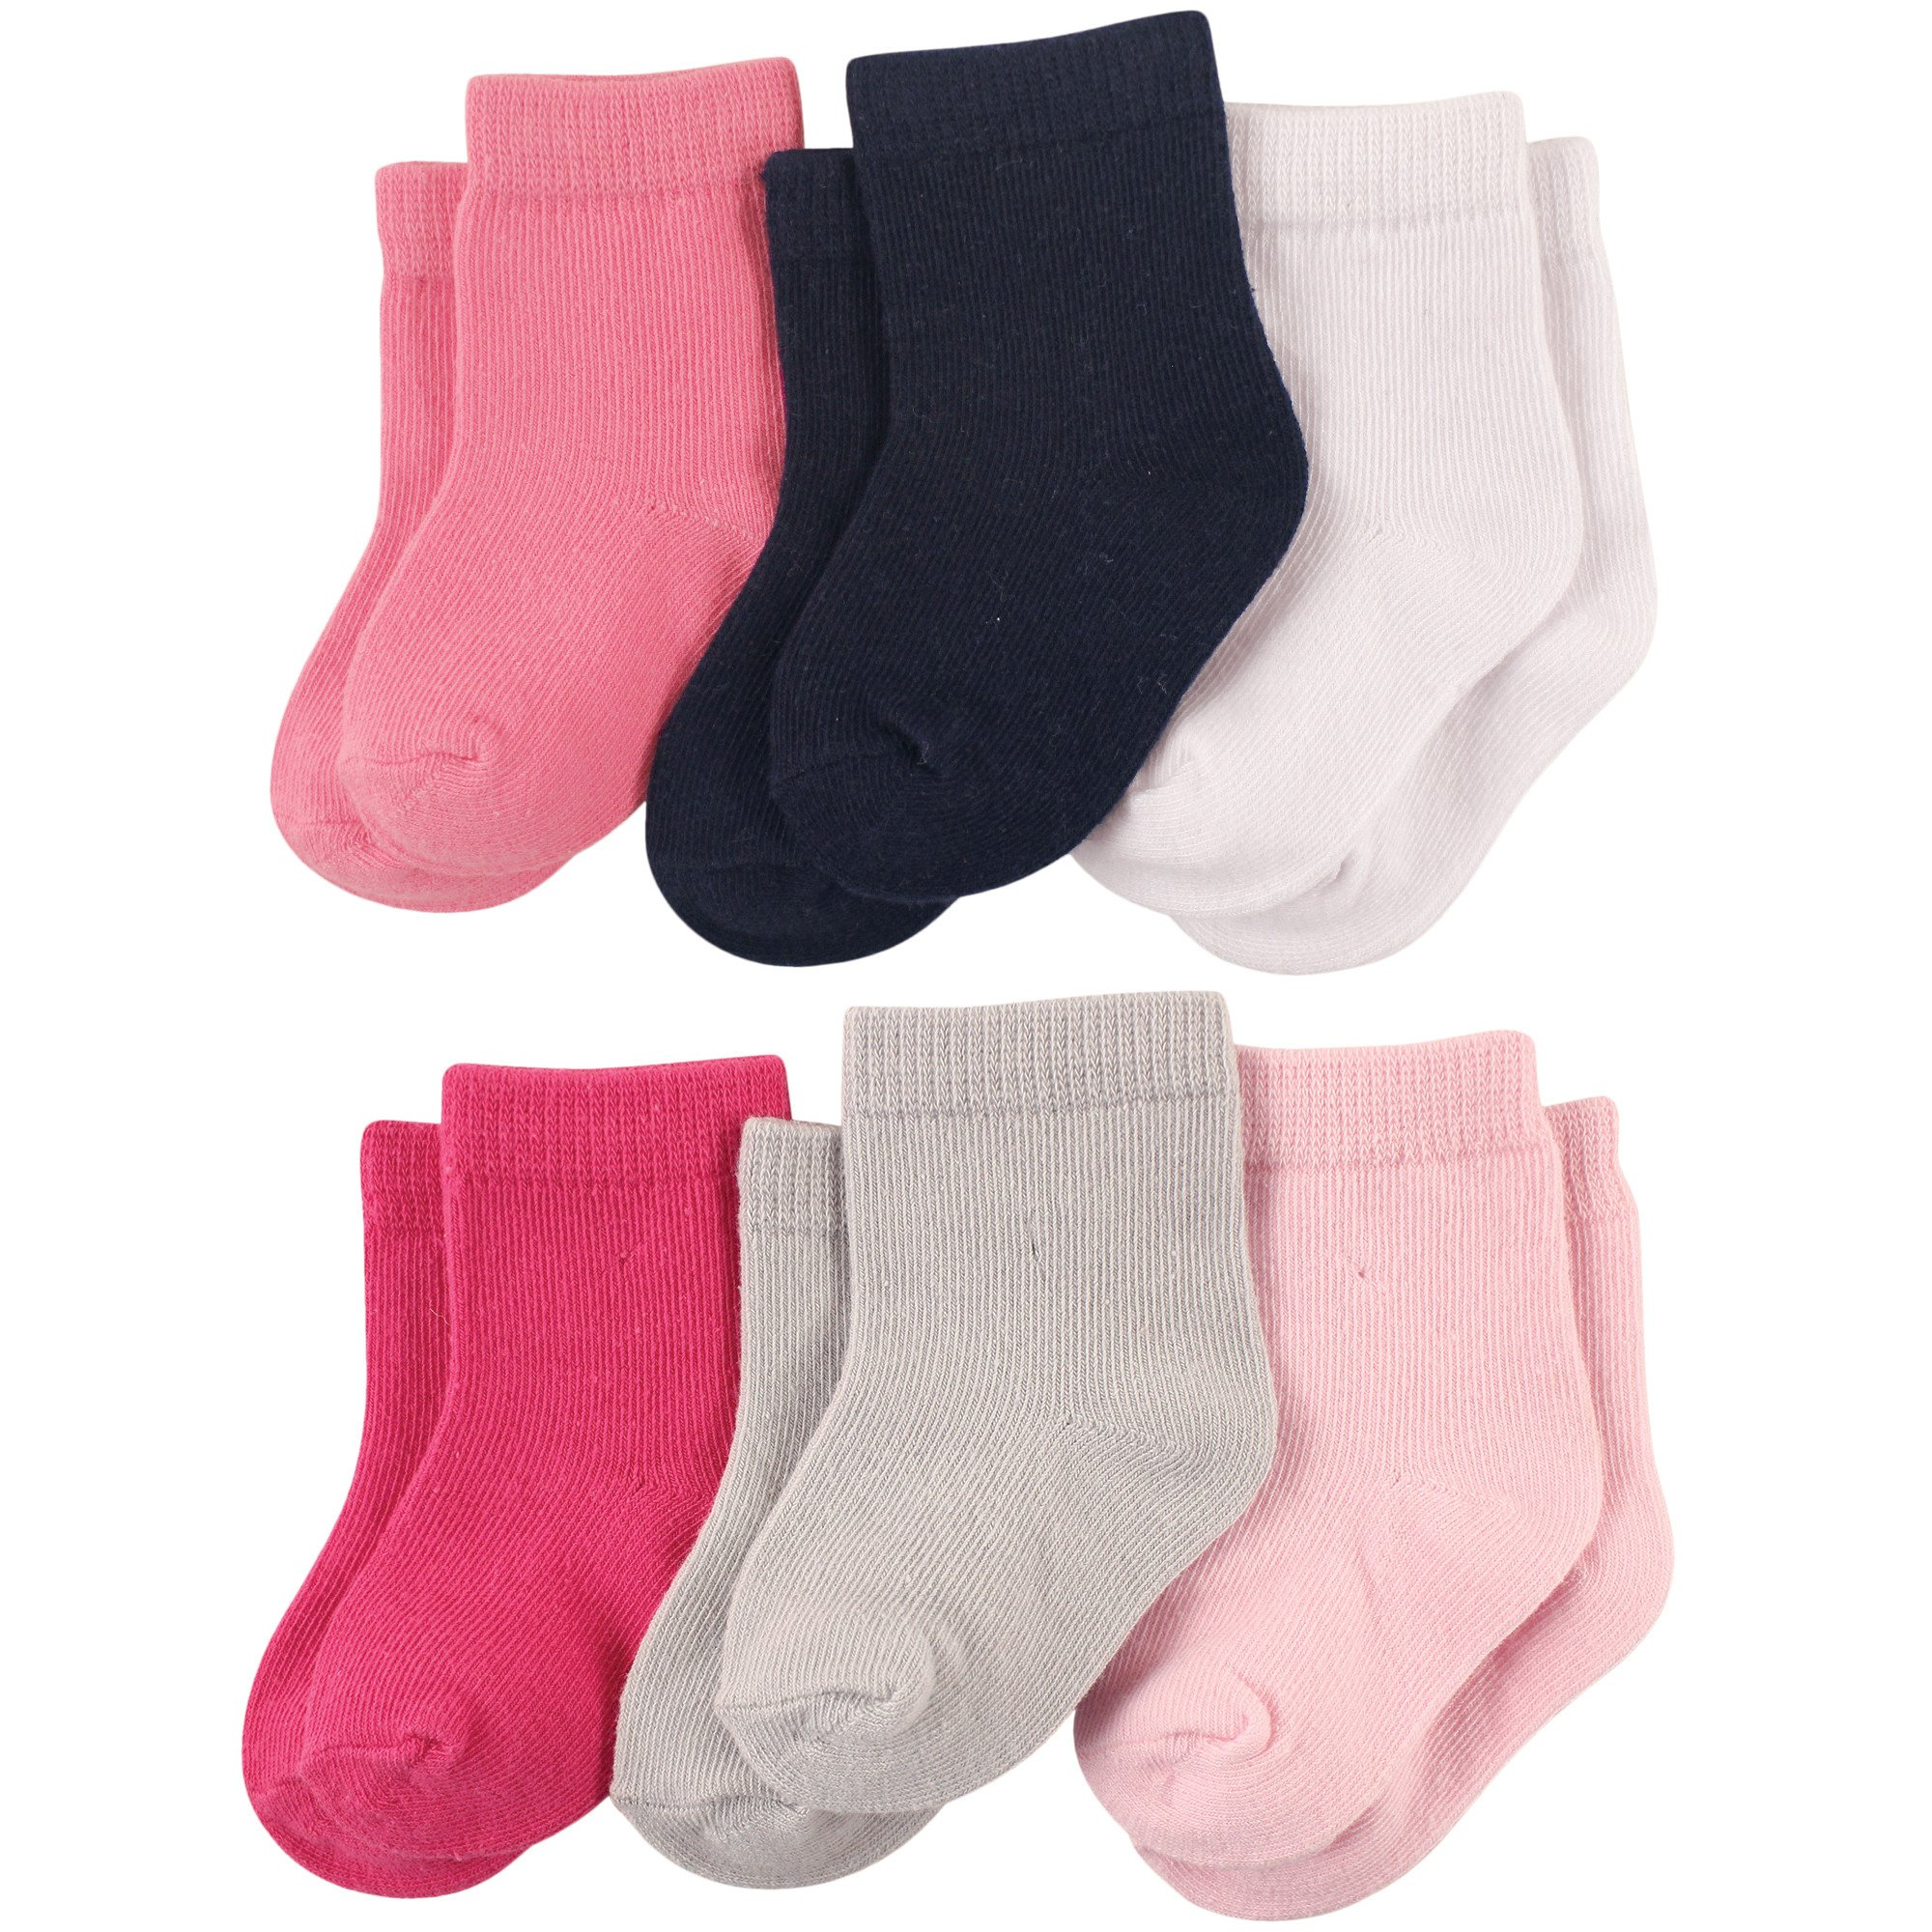 Luvable Friends Baby Solid Crew Socks 6-Pack, Pink